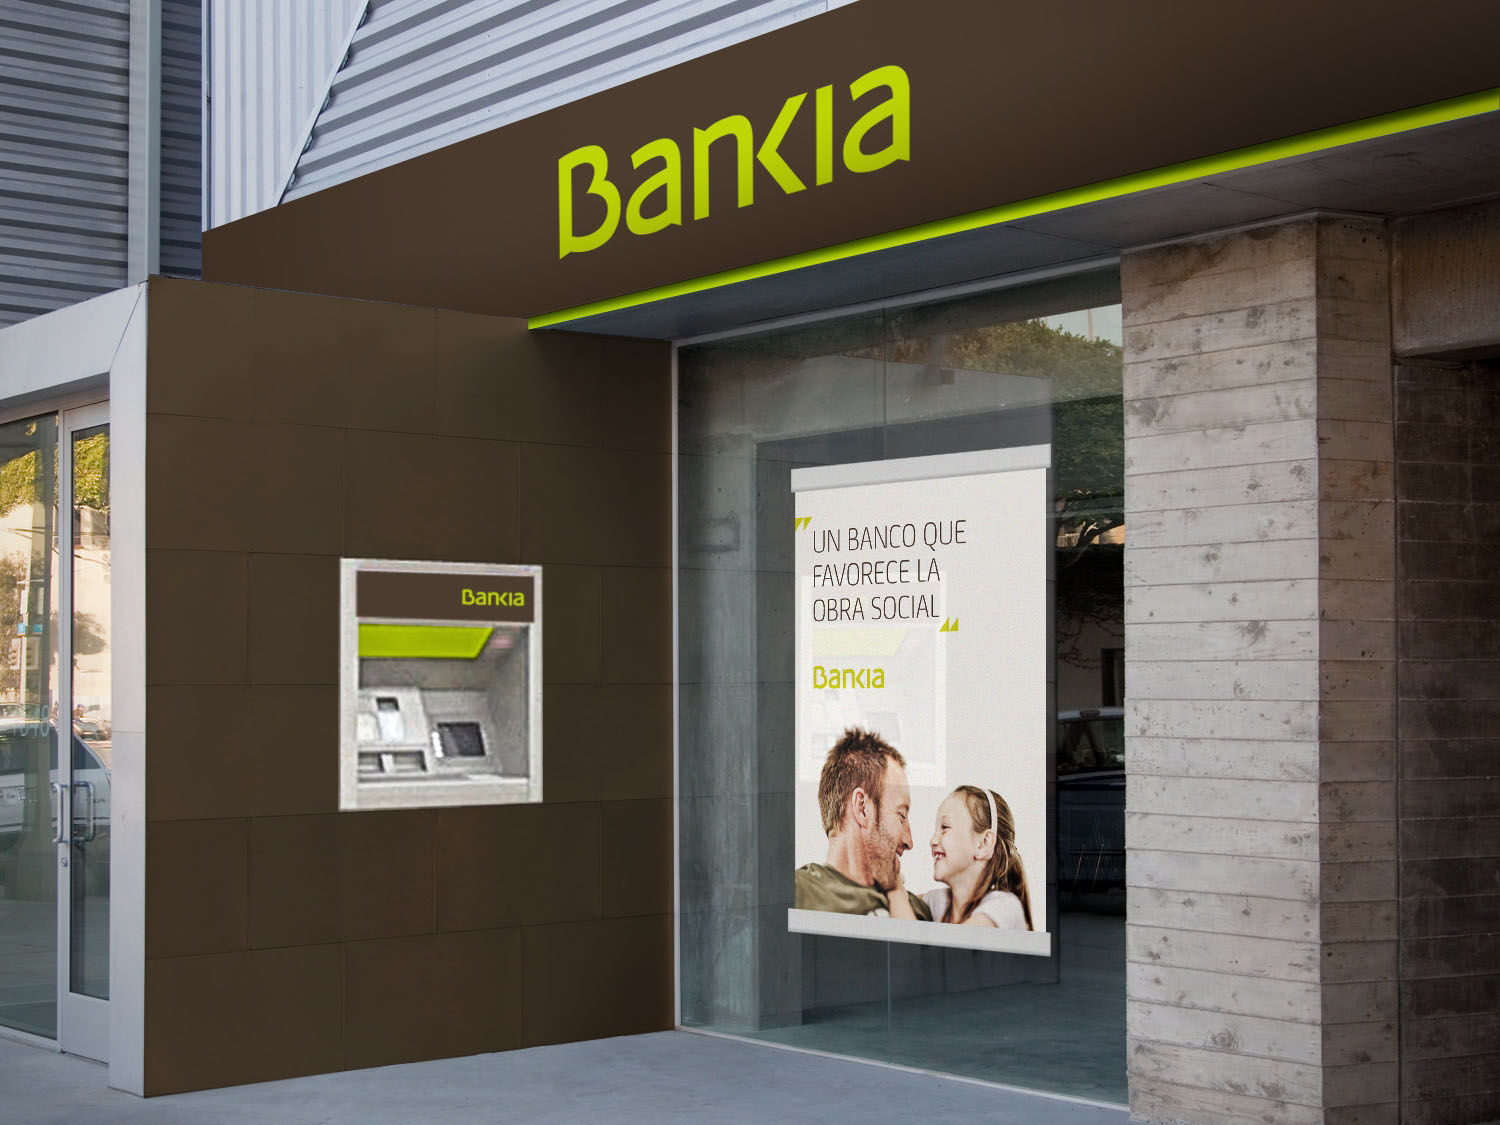 Regalos bancos por domiciliar nomina 2015 bankia blog de for Bankia oficina de internet